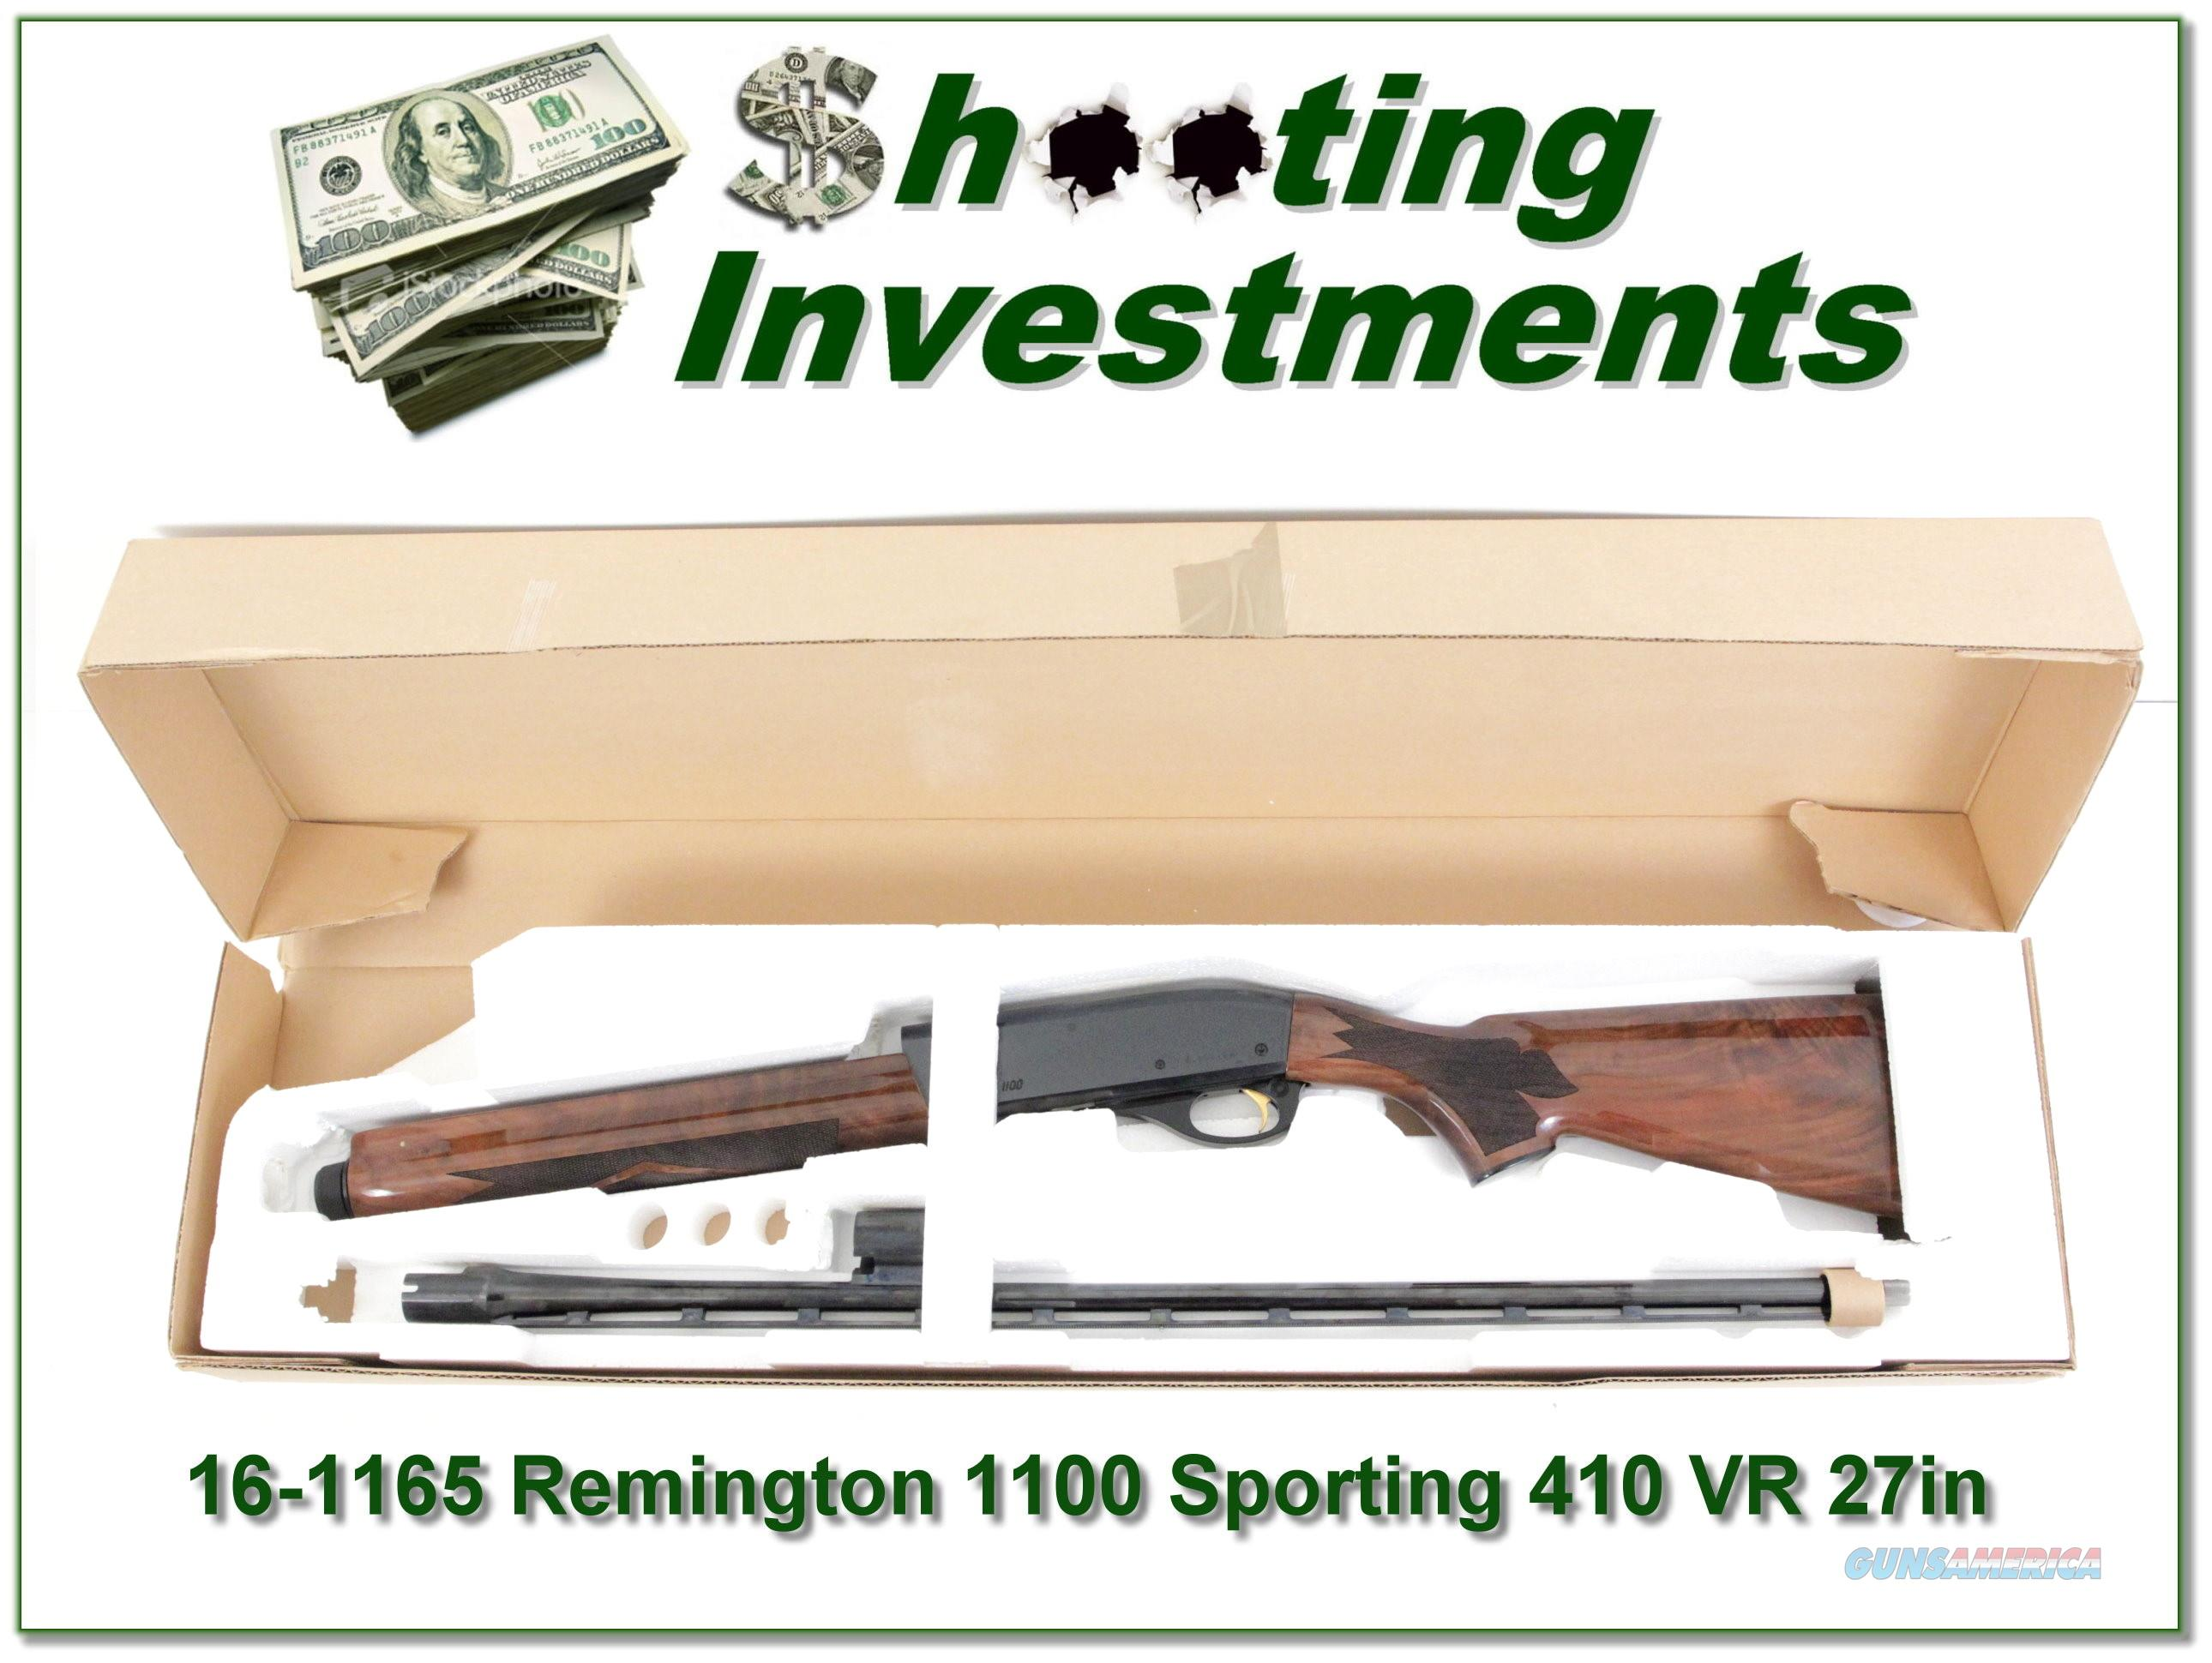 Remington 1100 Sporting 410 ANIB  Guns > Shotguns > Remington Shotguns  > Autoloaders > Hunting